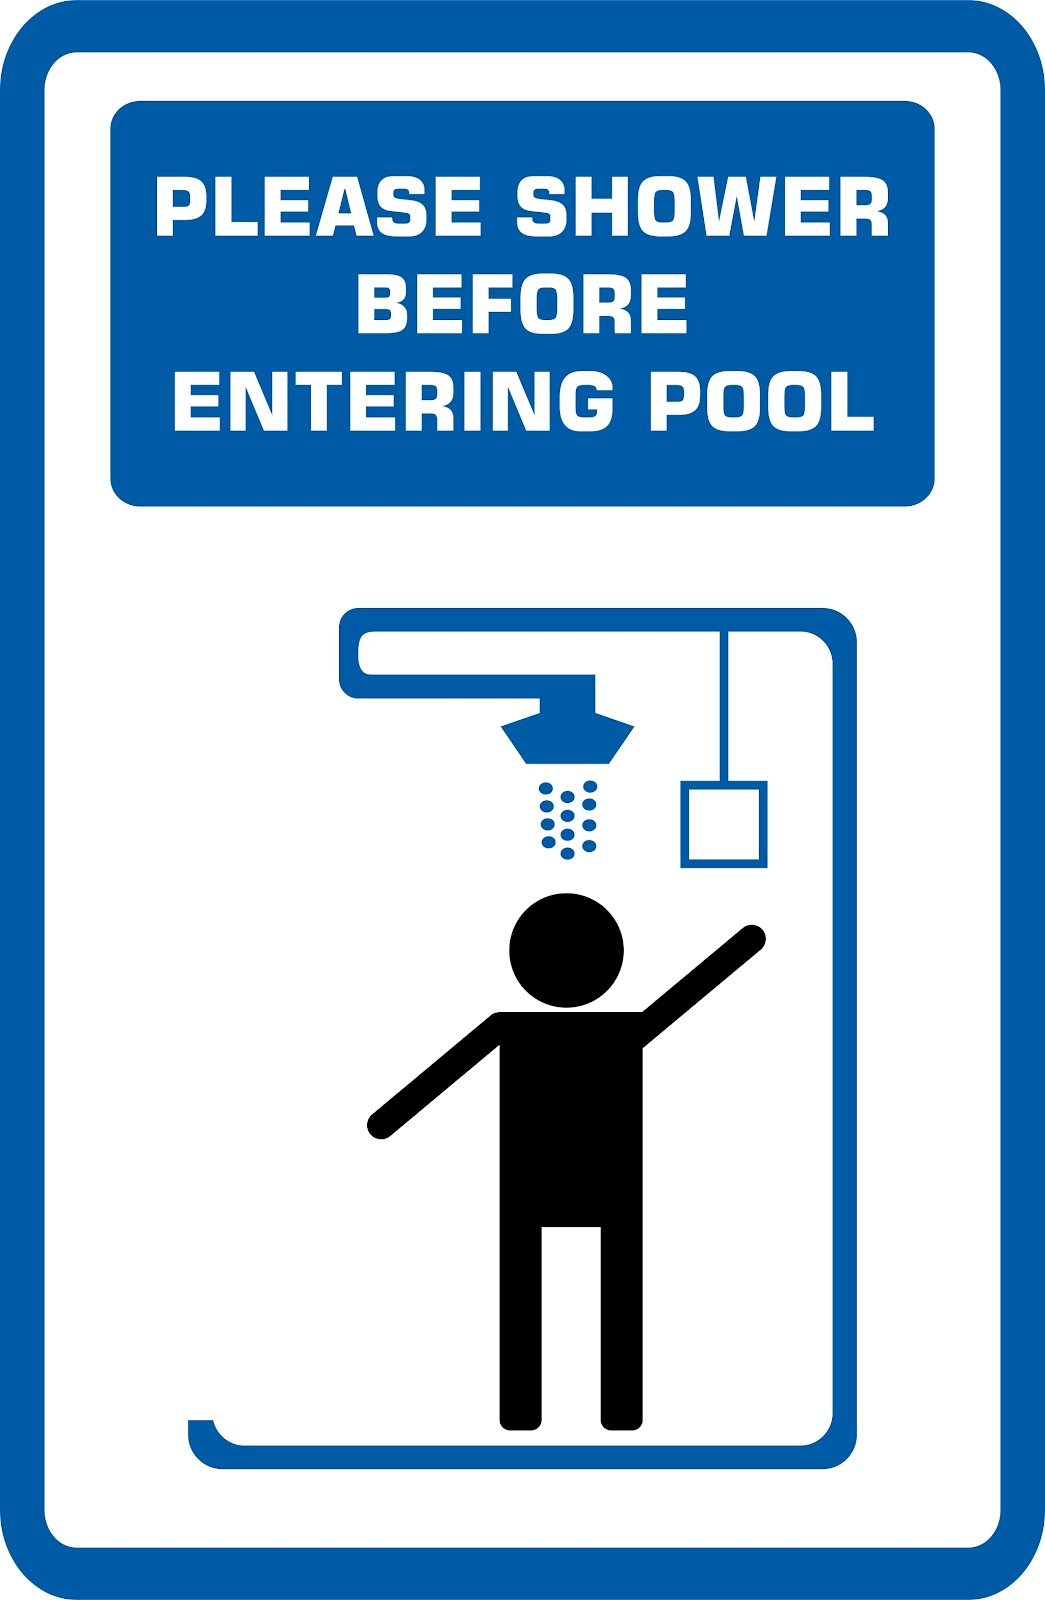 a rectangular sign that says please shower before entering pool and has an image of a person showering